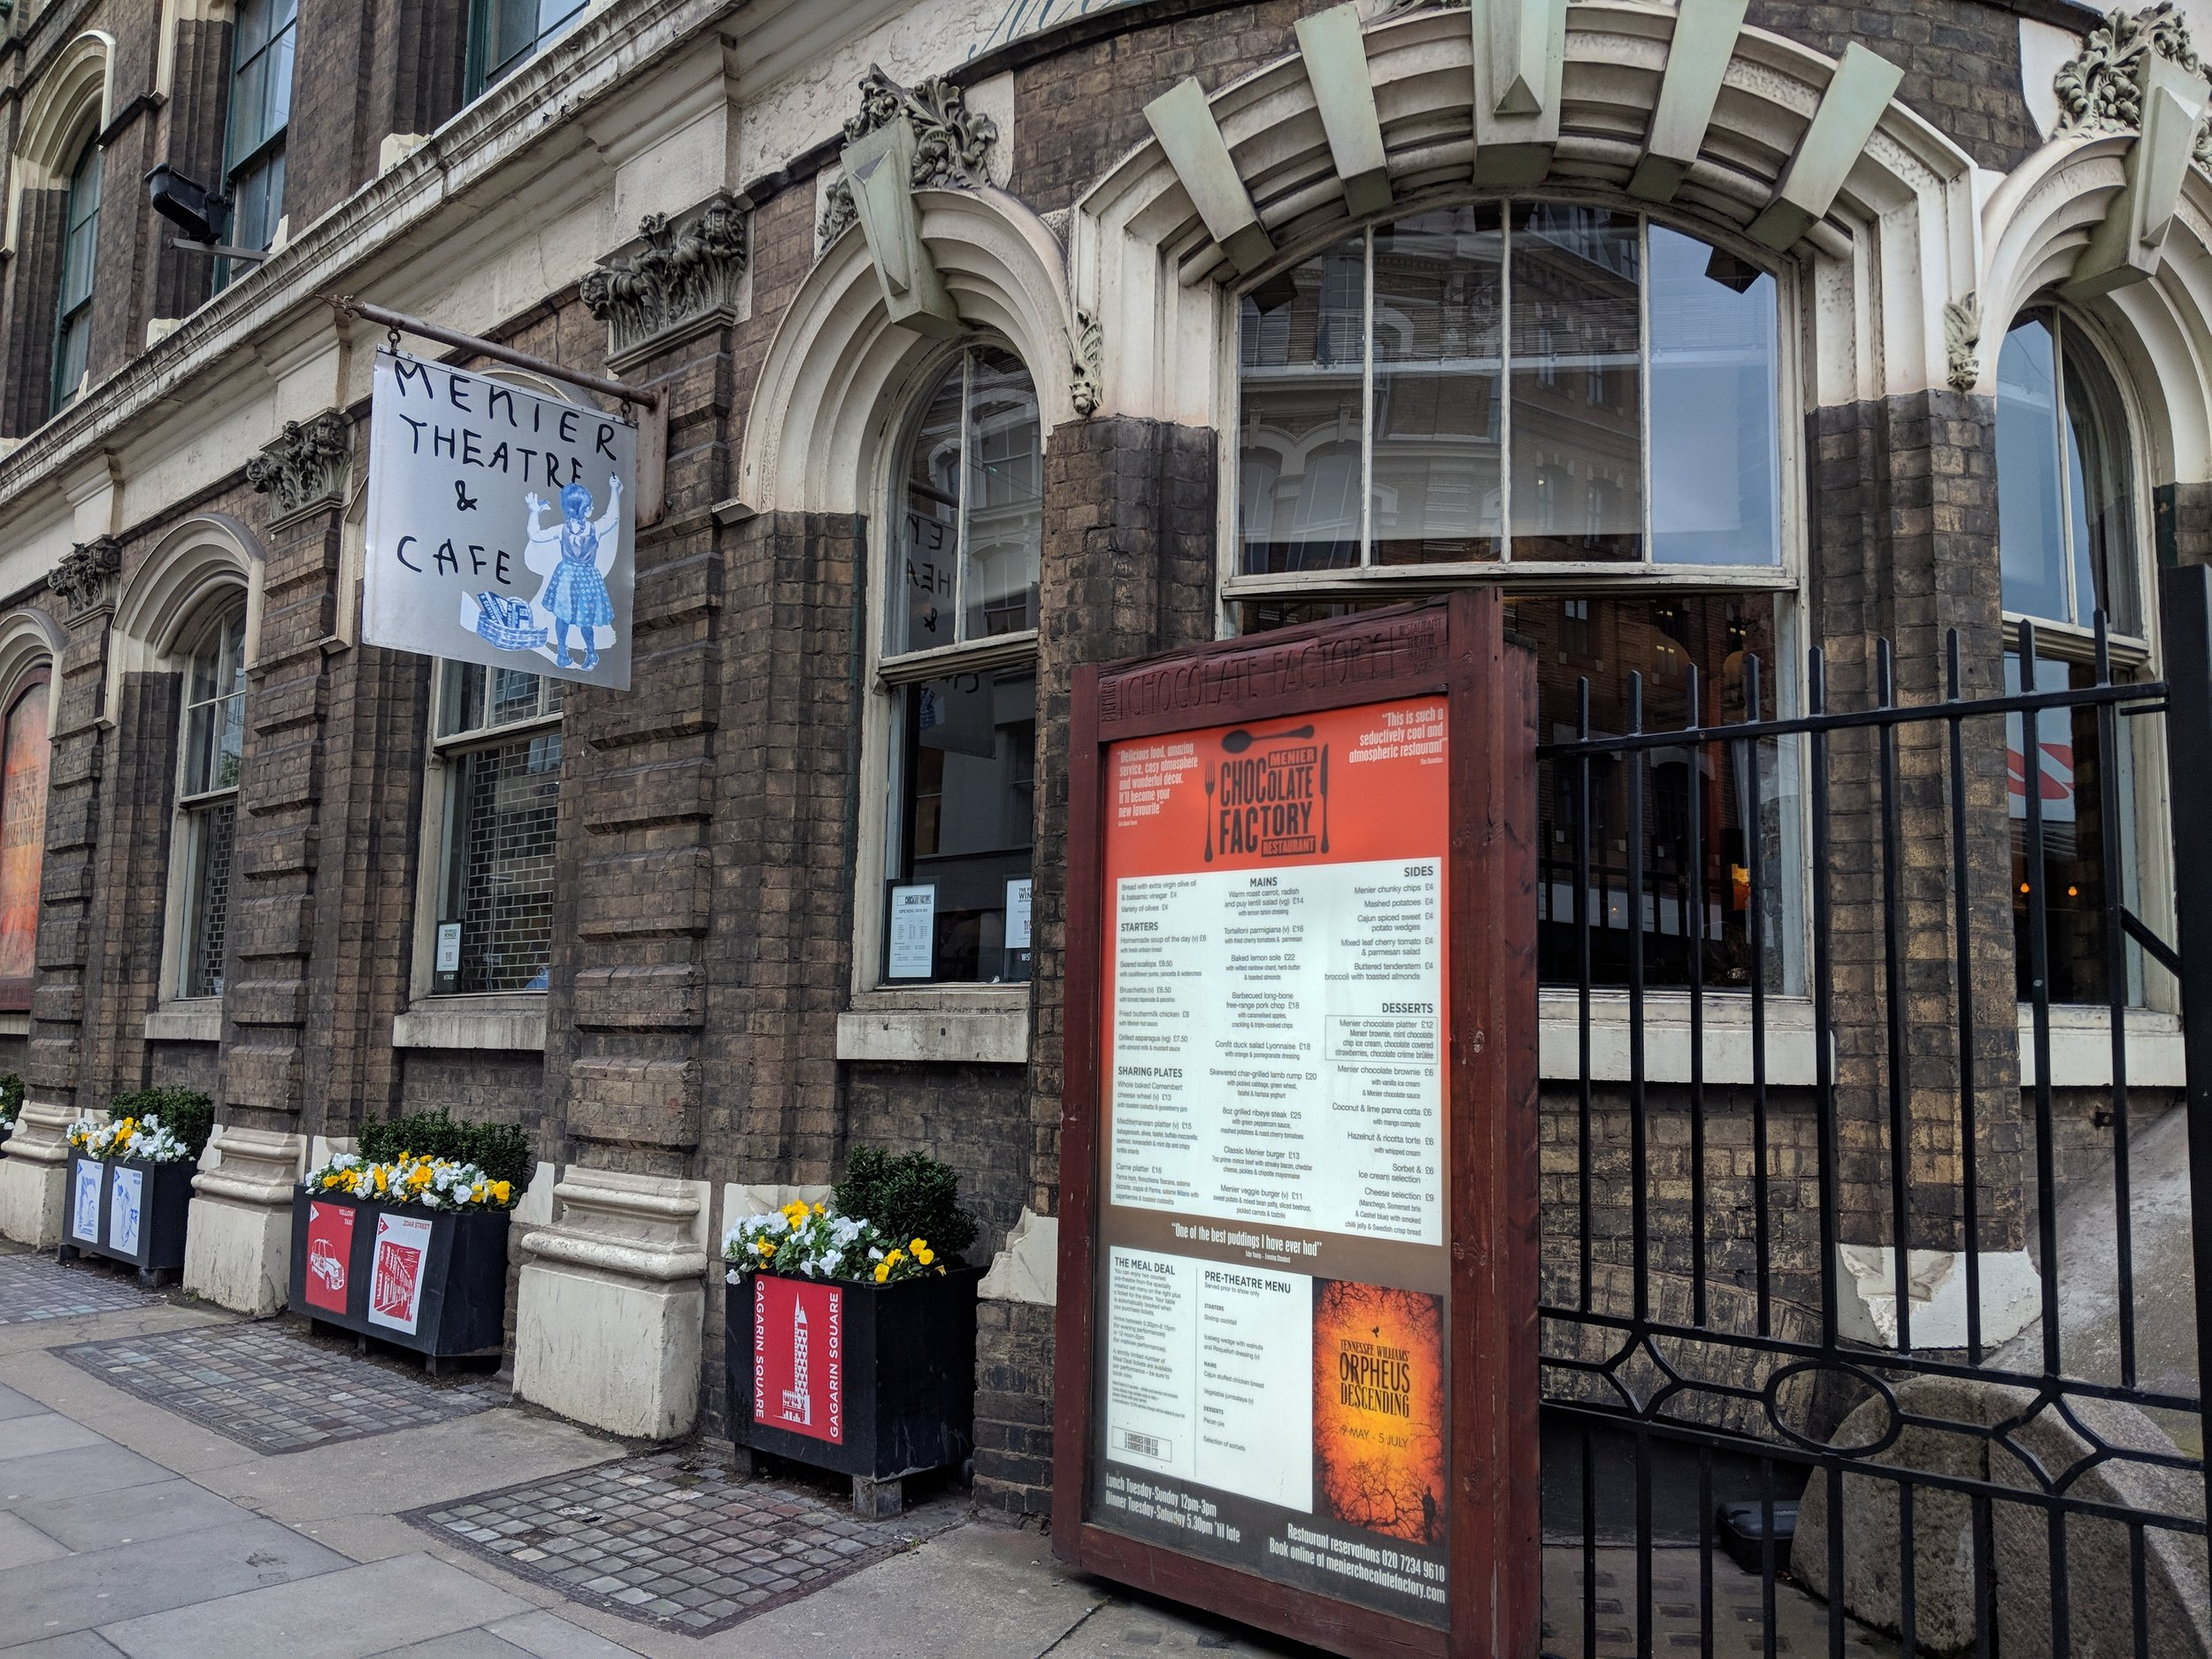 Menier Chocolate Factory - visited 09/05/2019